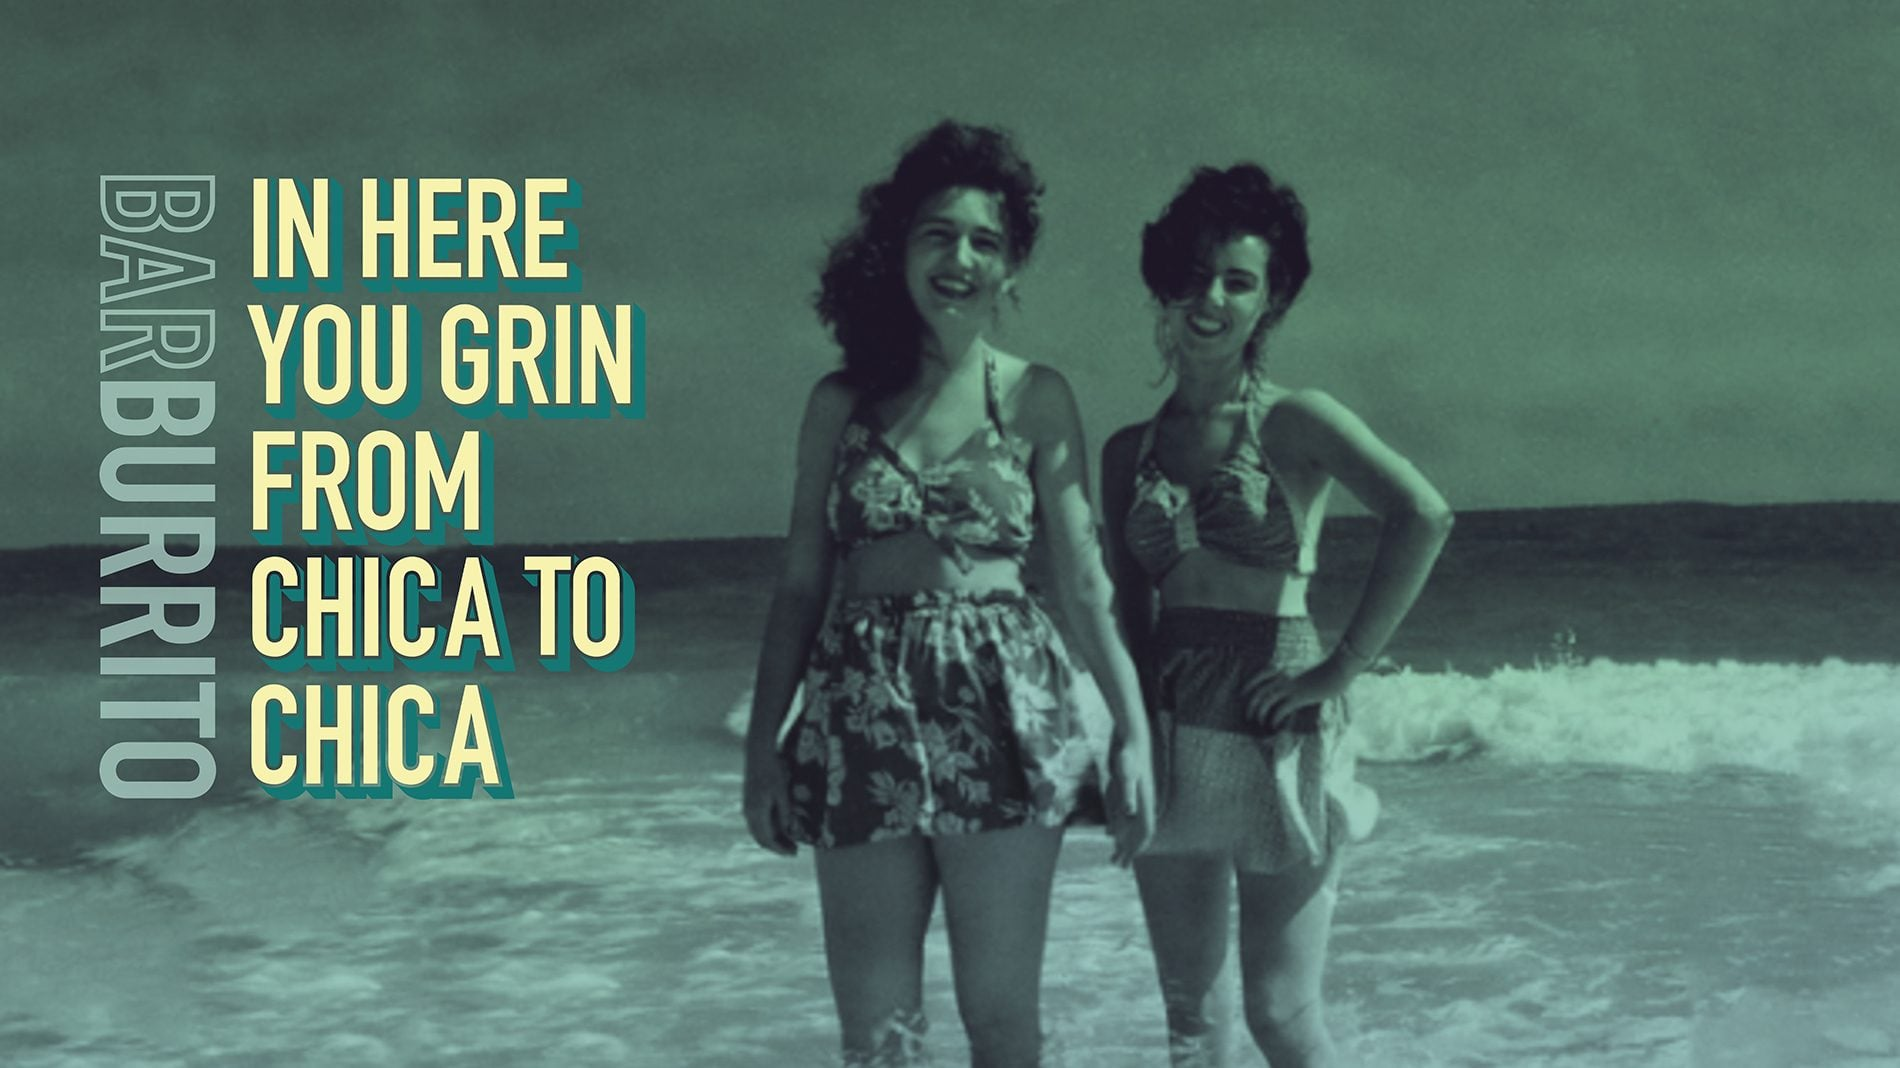 Poster of 2 women in the sea for barburrito restaurant chain